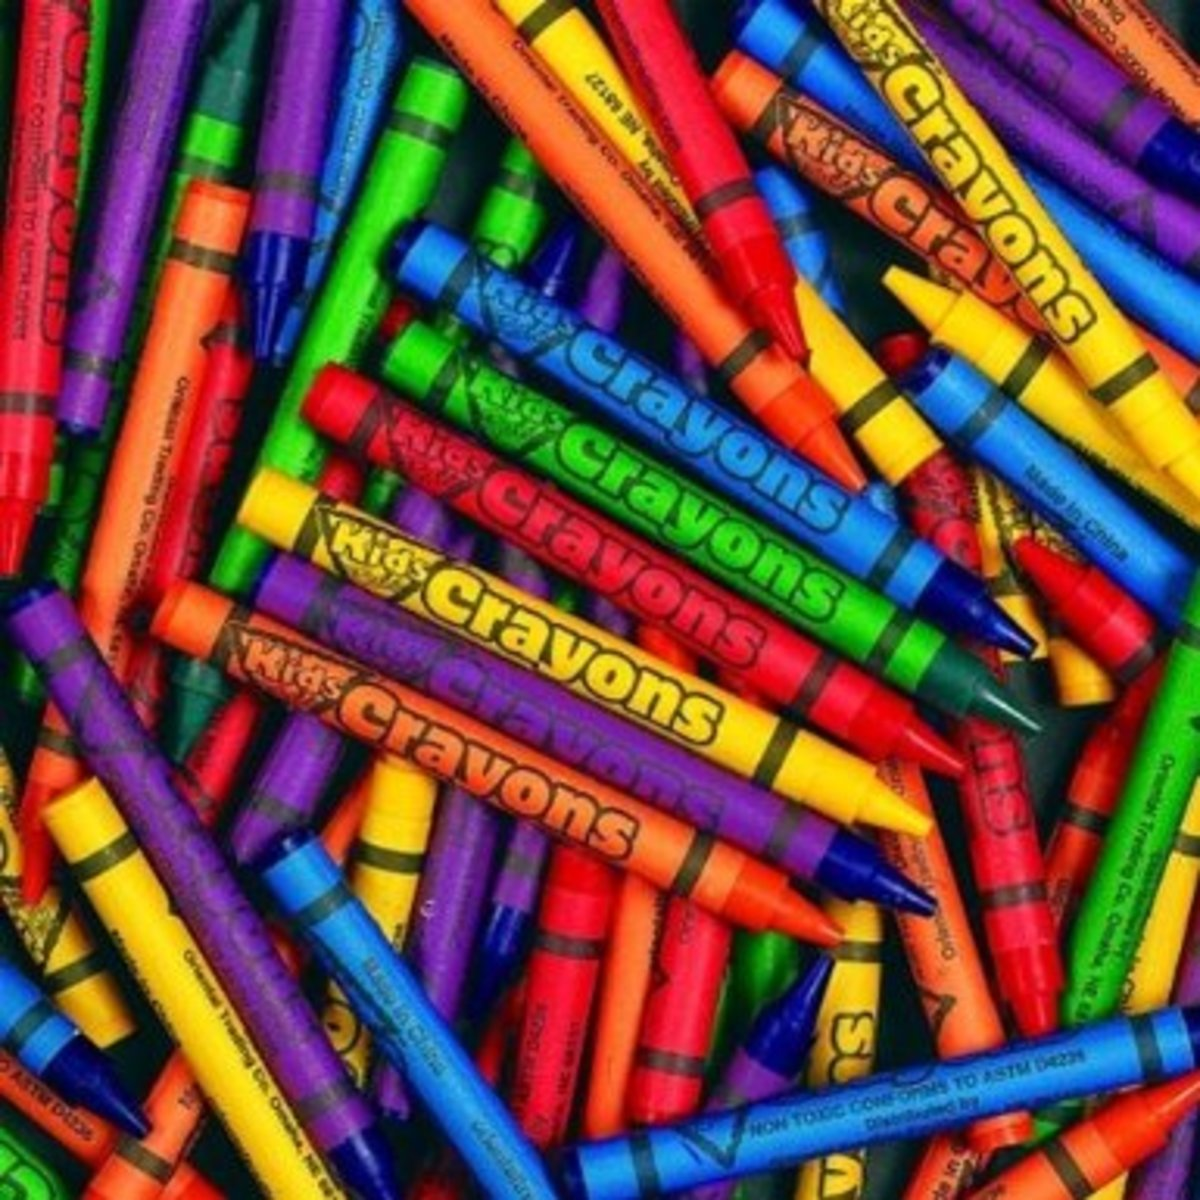 Coloring Crayons for Coloring Pages